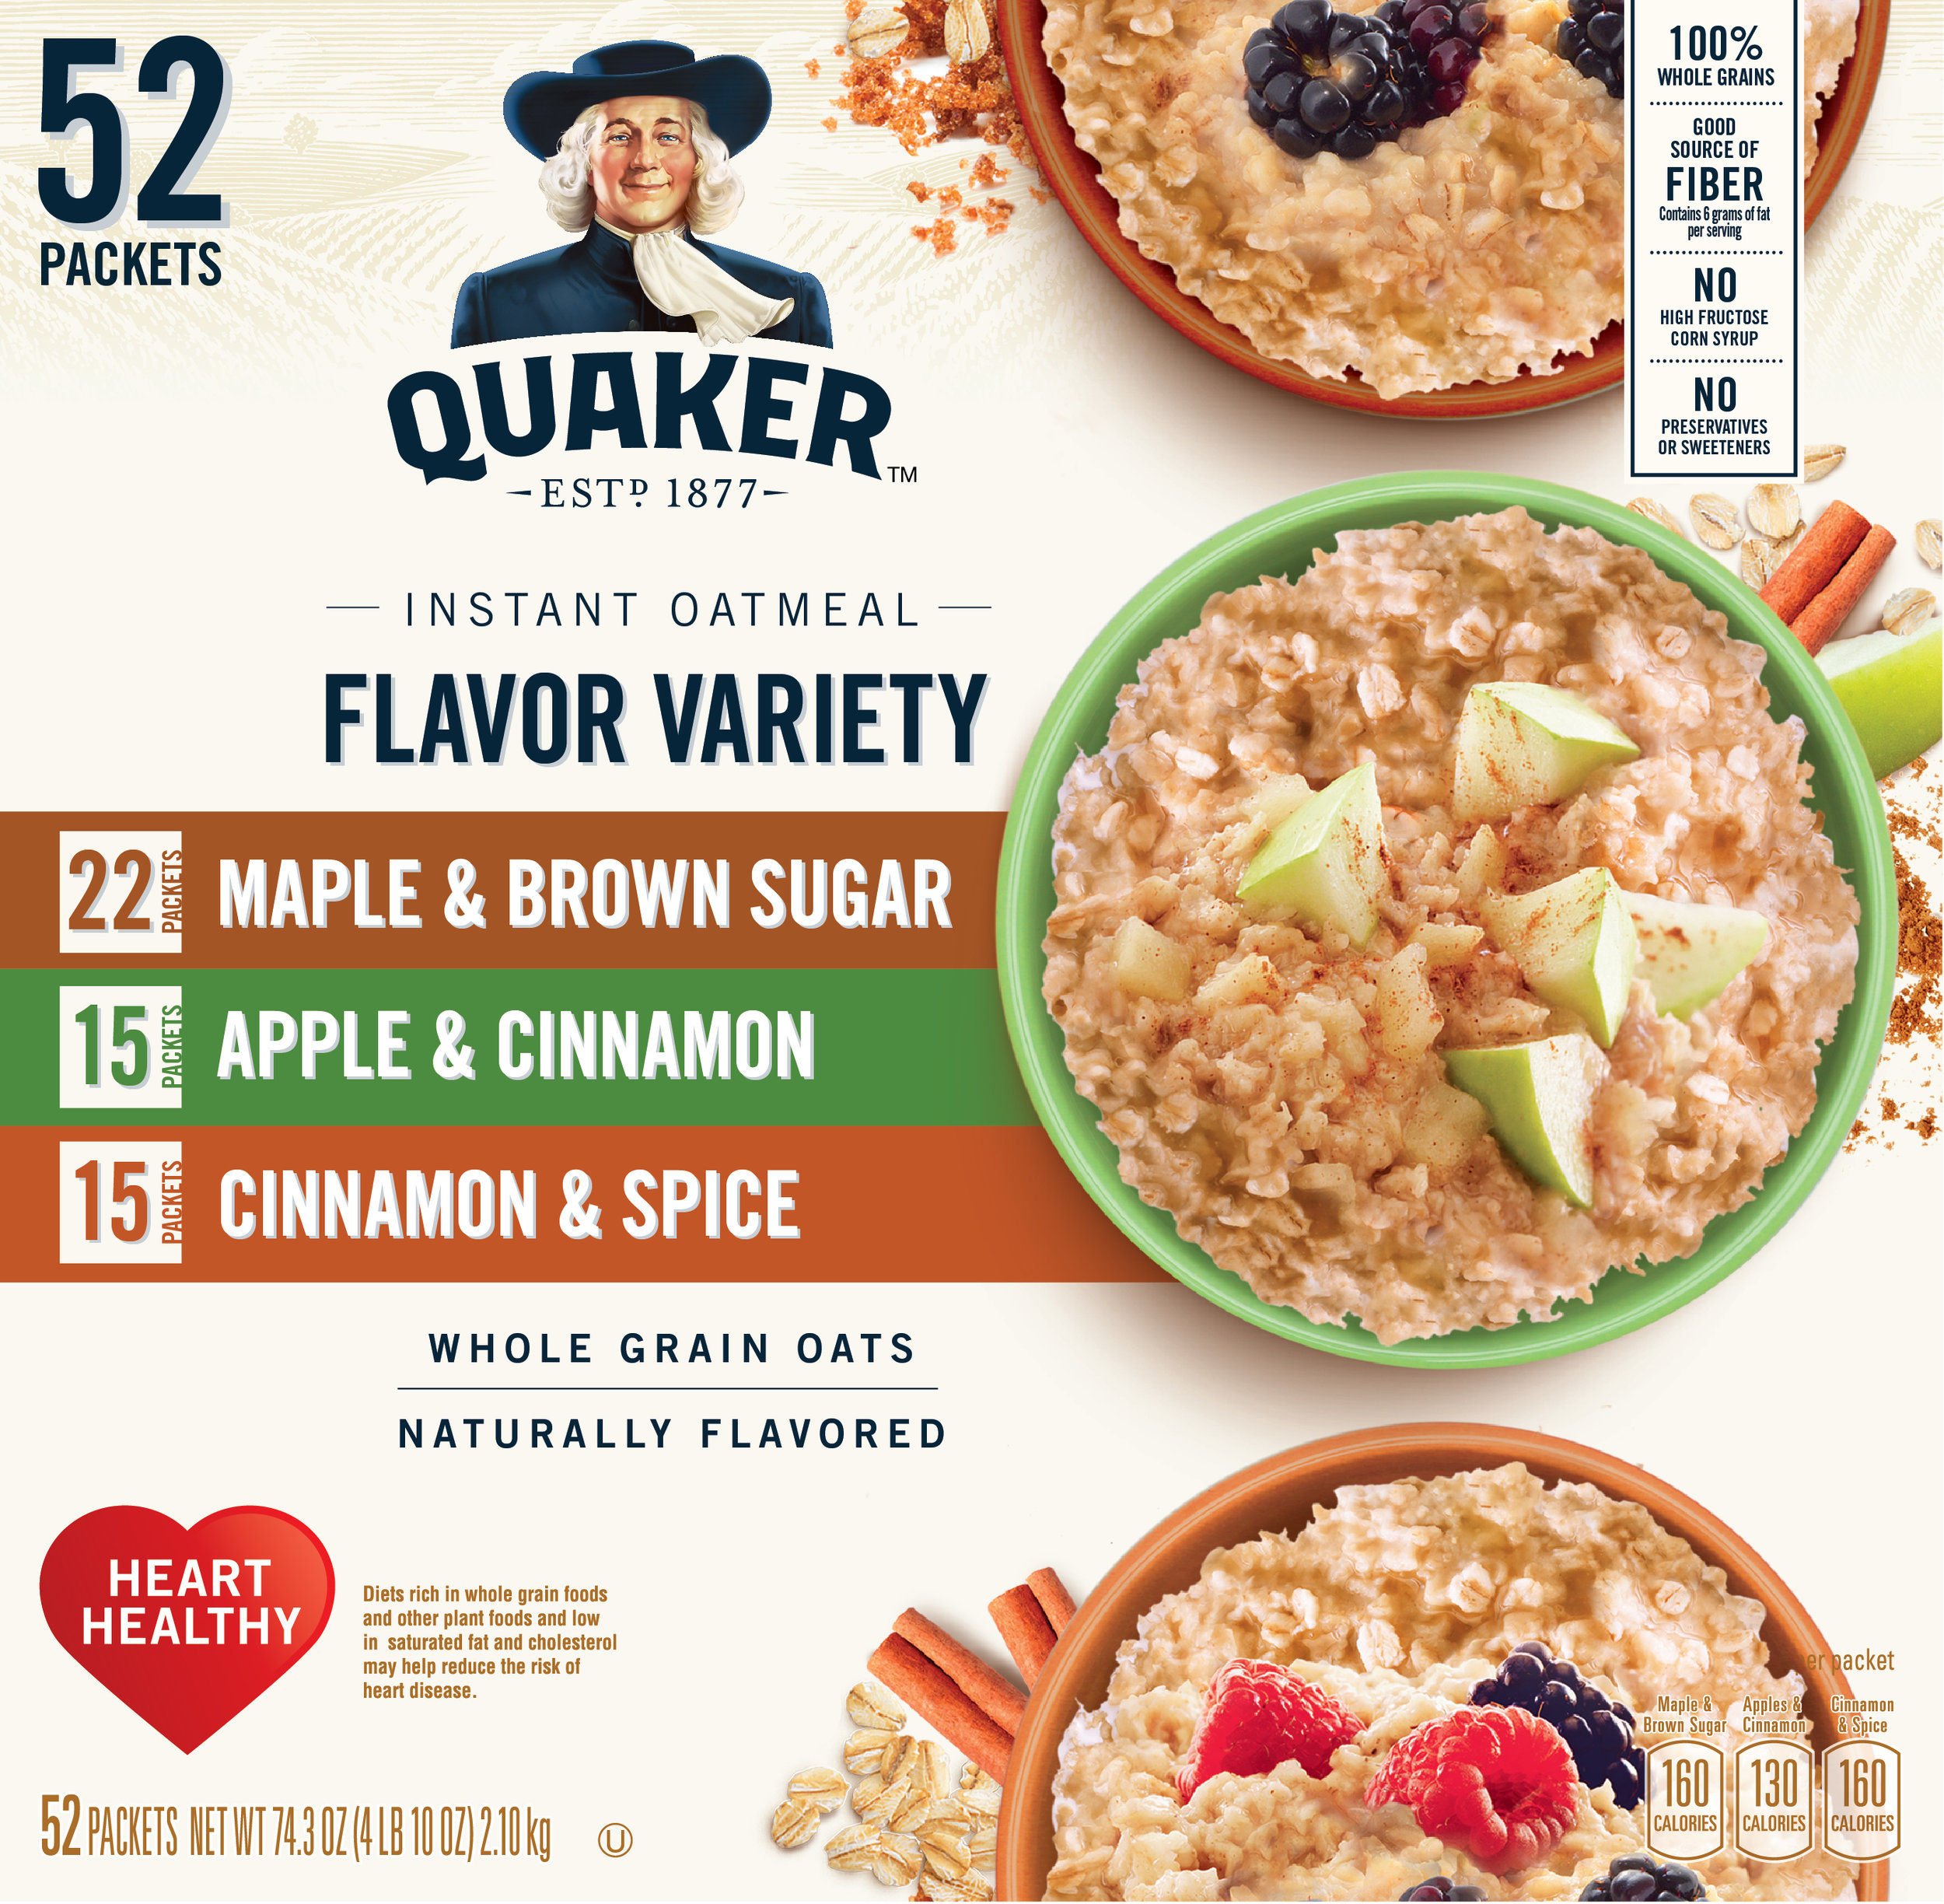 Quaker Applying new design architecture globally  for club packaging, in store displays, and seasonal packaging. @hauggardcreative